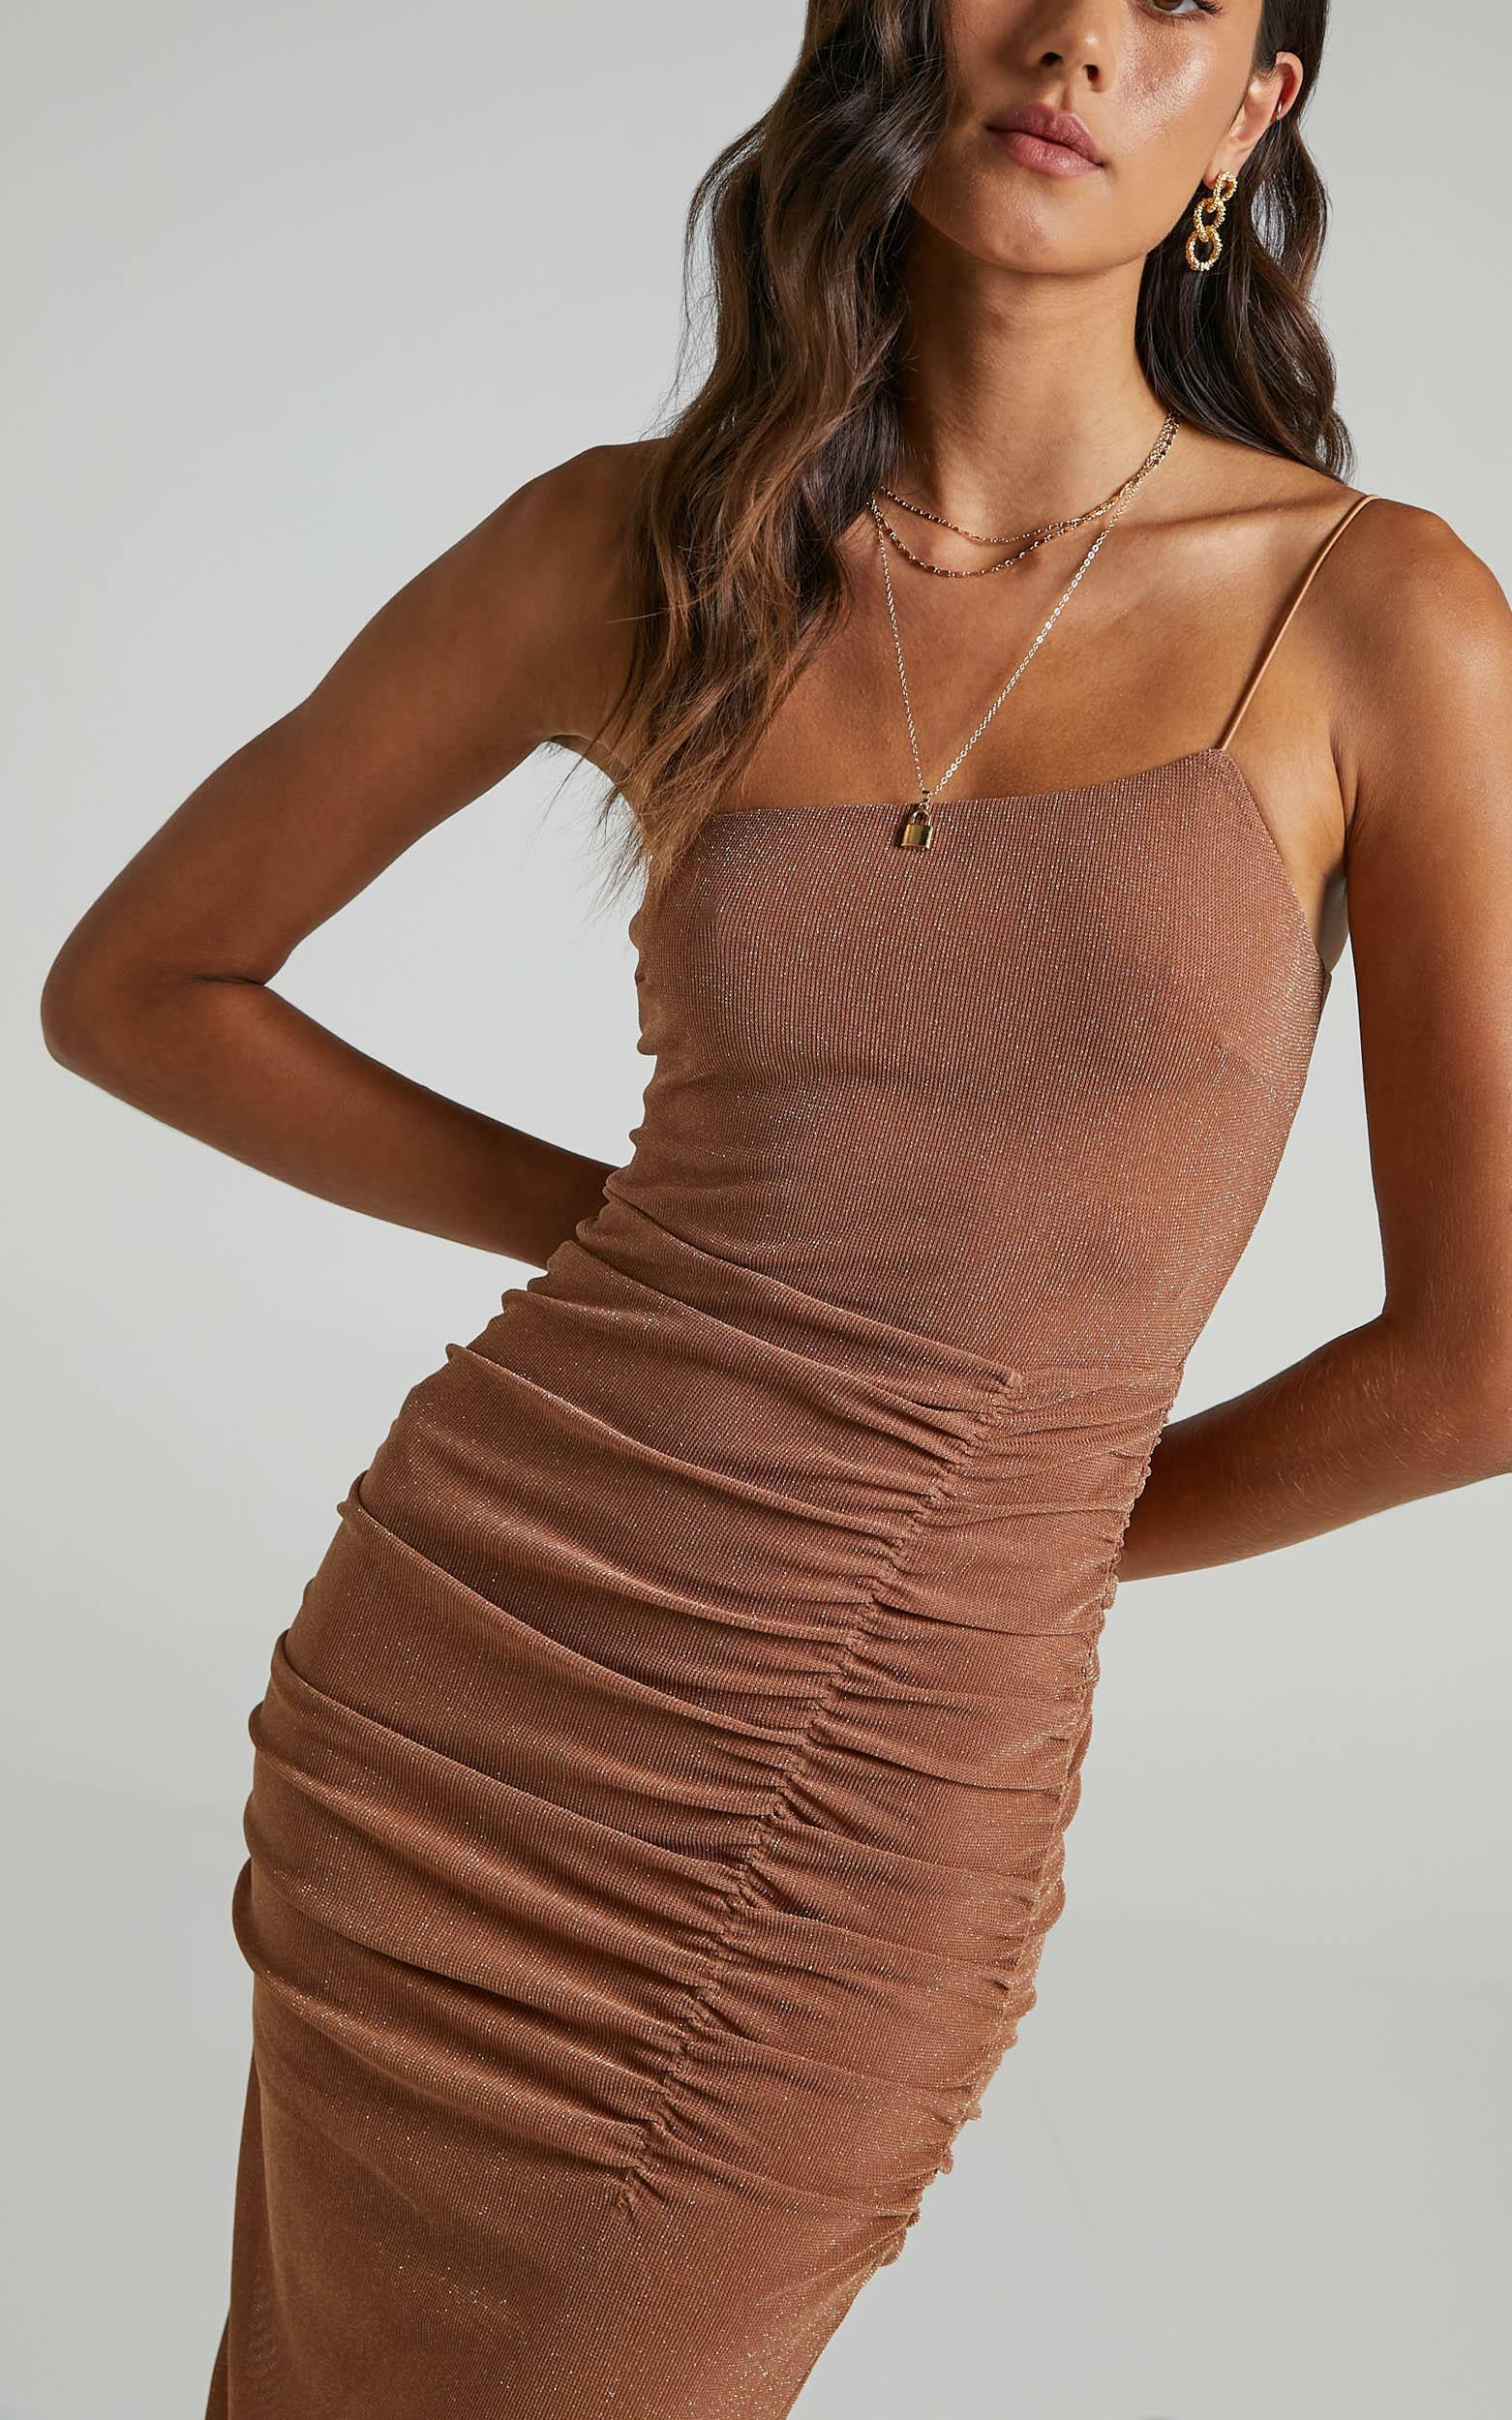 Annelie Dress In Tan Lurex - 6 (XS), Tan, hi-res image number null